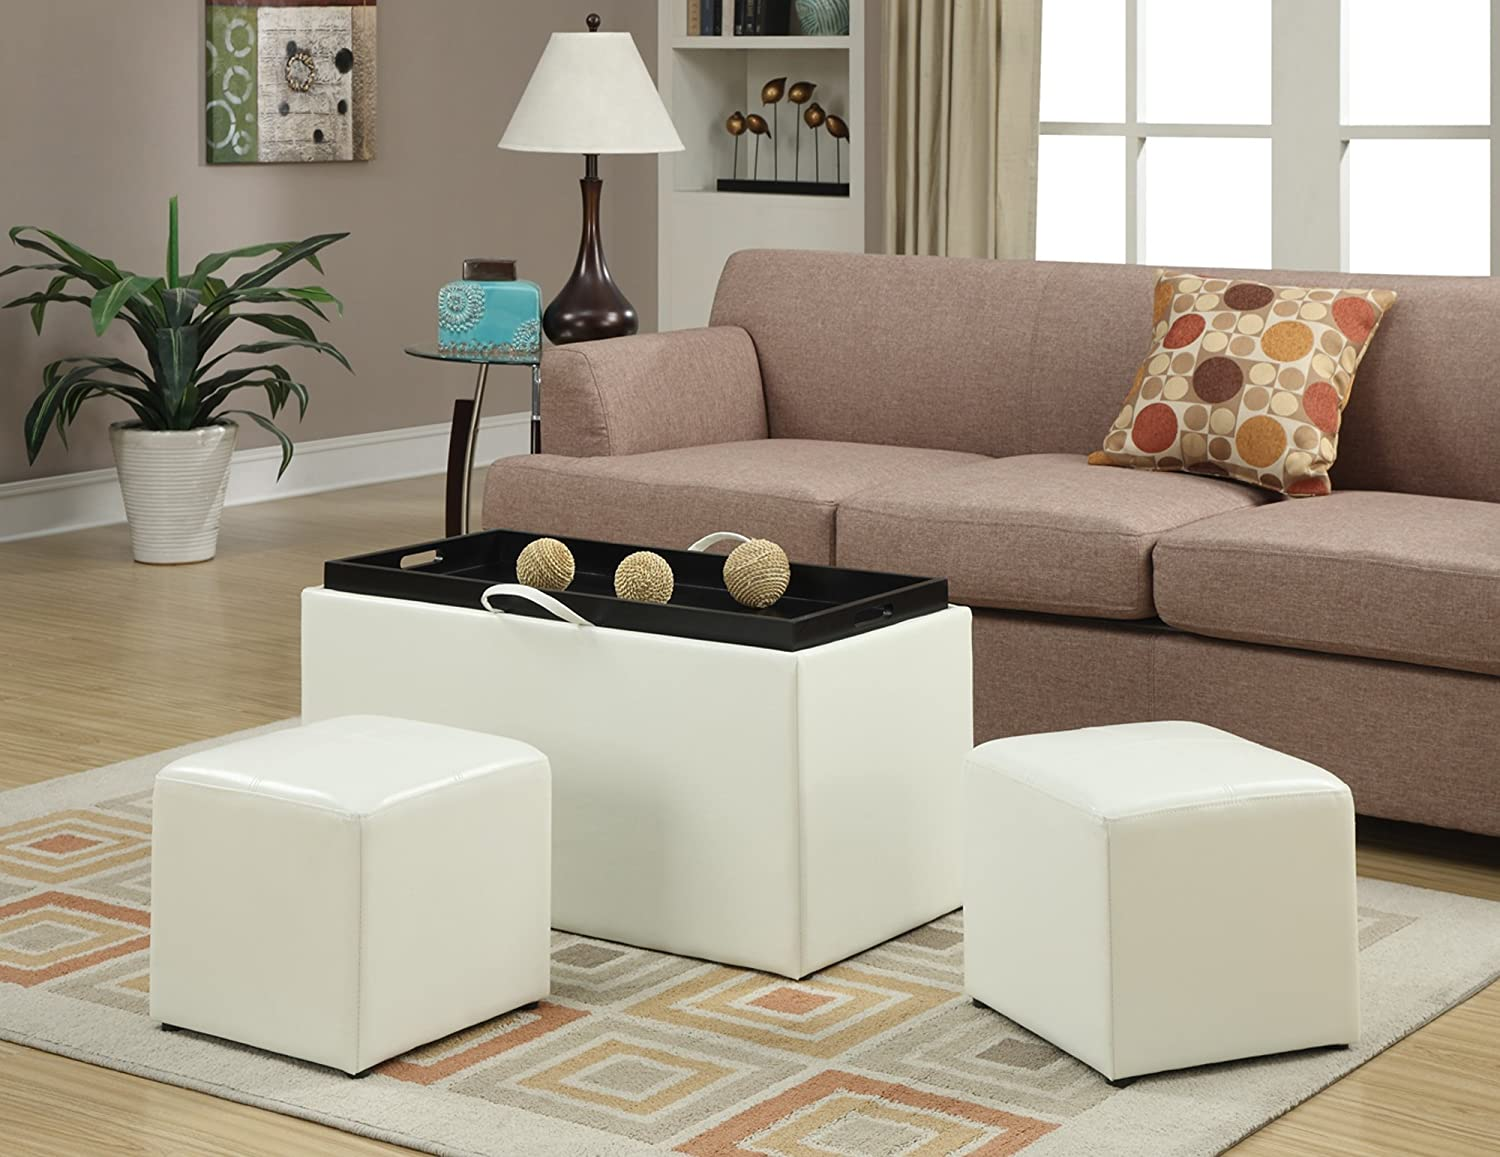 Amazon.com: Convenience Concepts Designs4Comfort Sheridan Faux Leather  Storage Bench With 2 Side Ottomans, White: Kitchen U0026 Dining